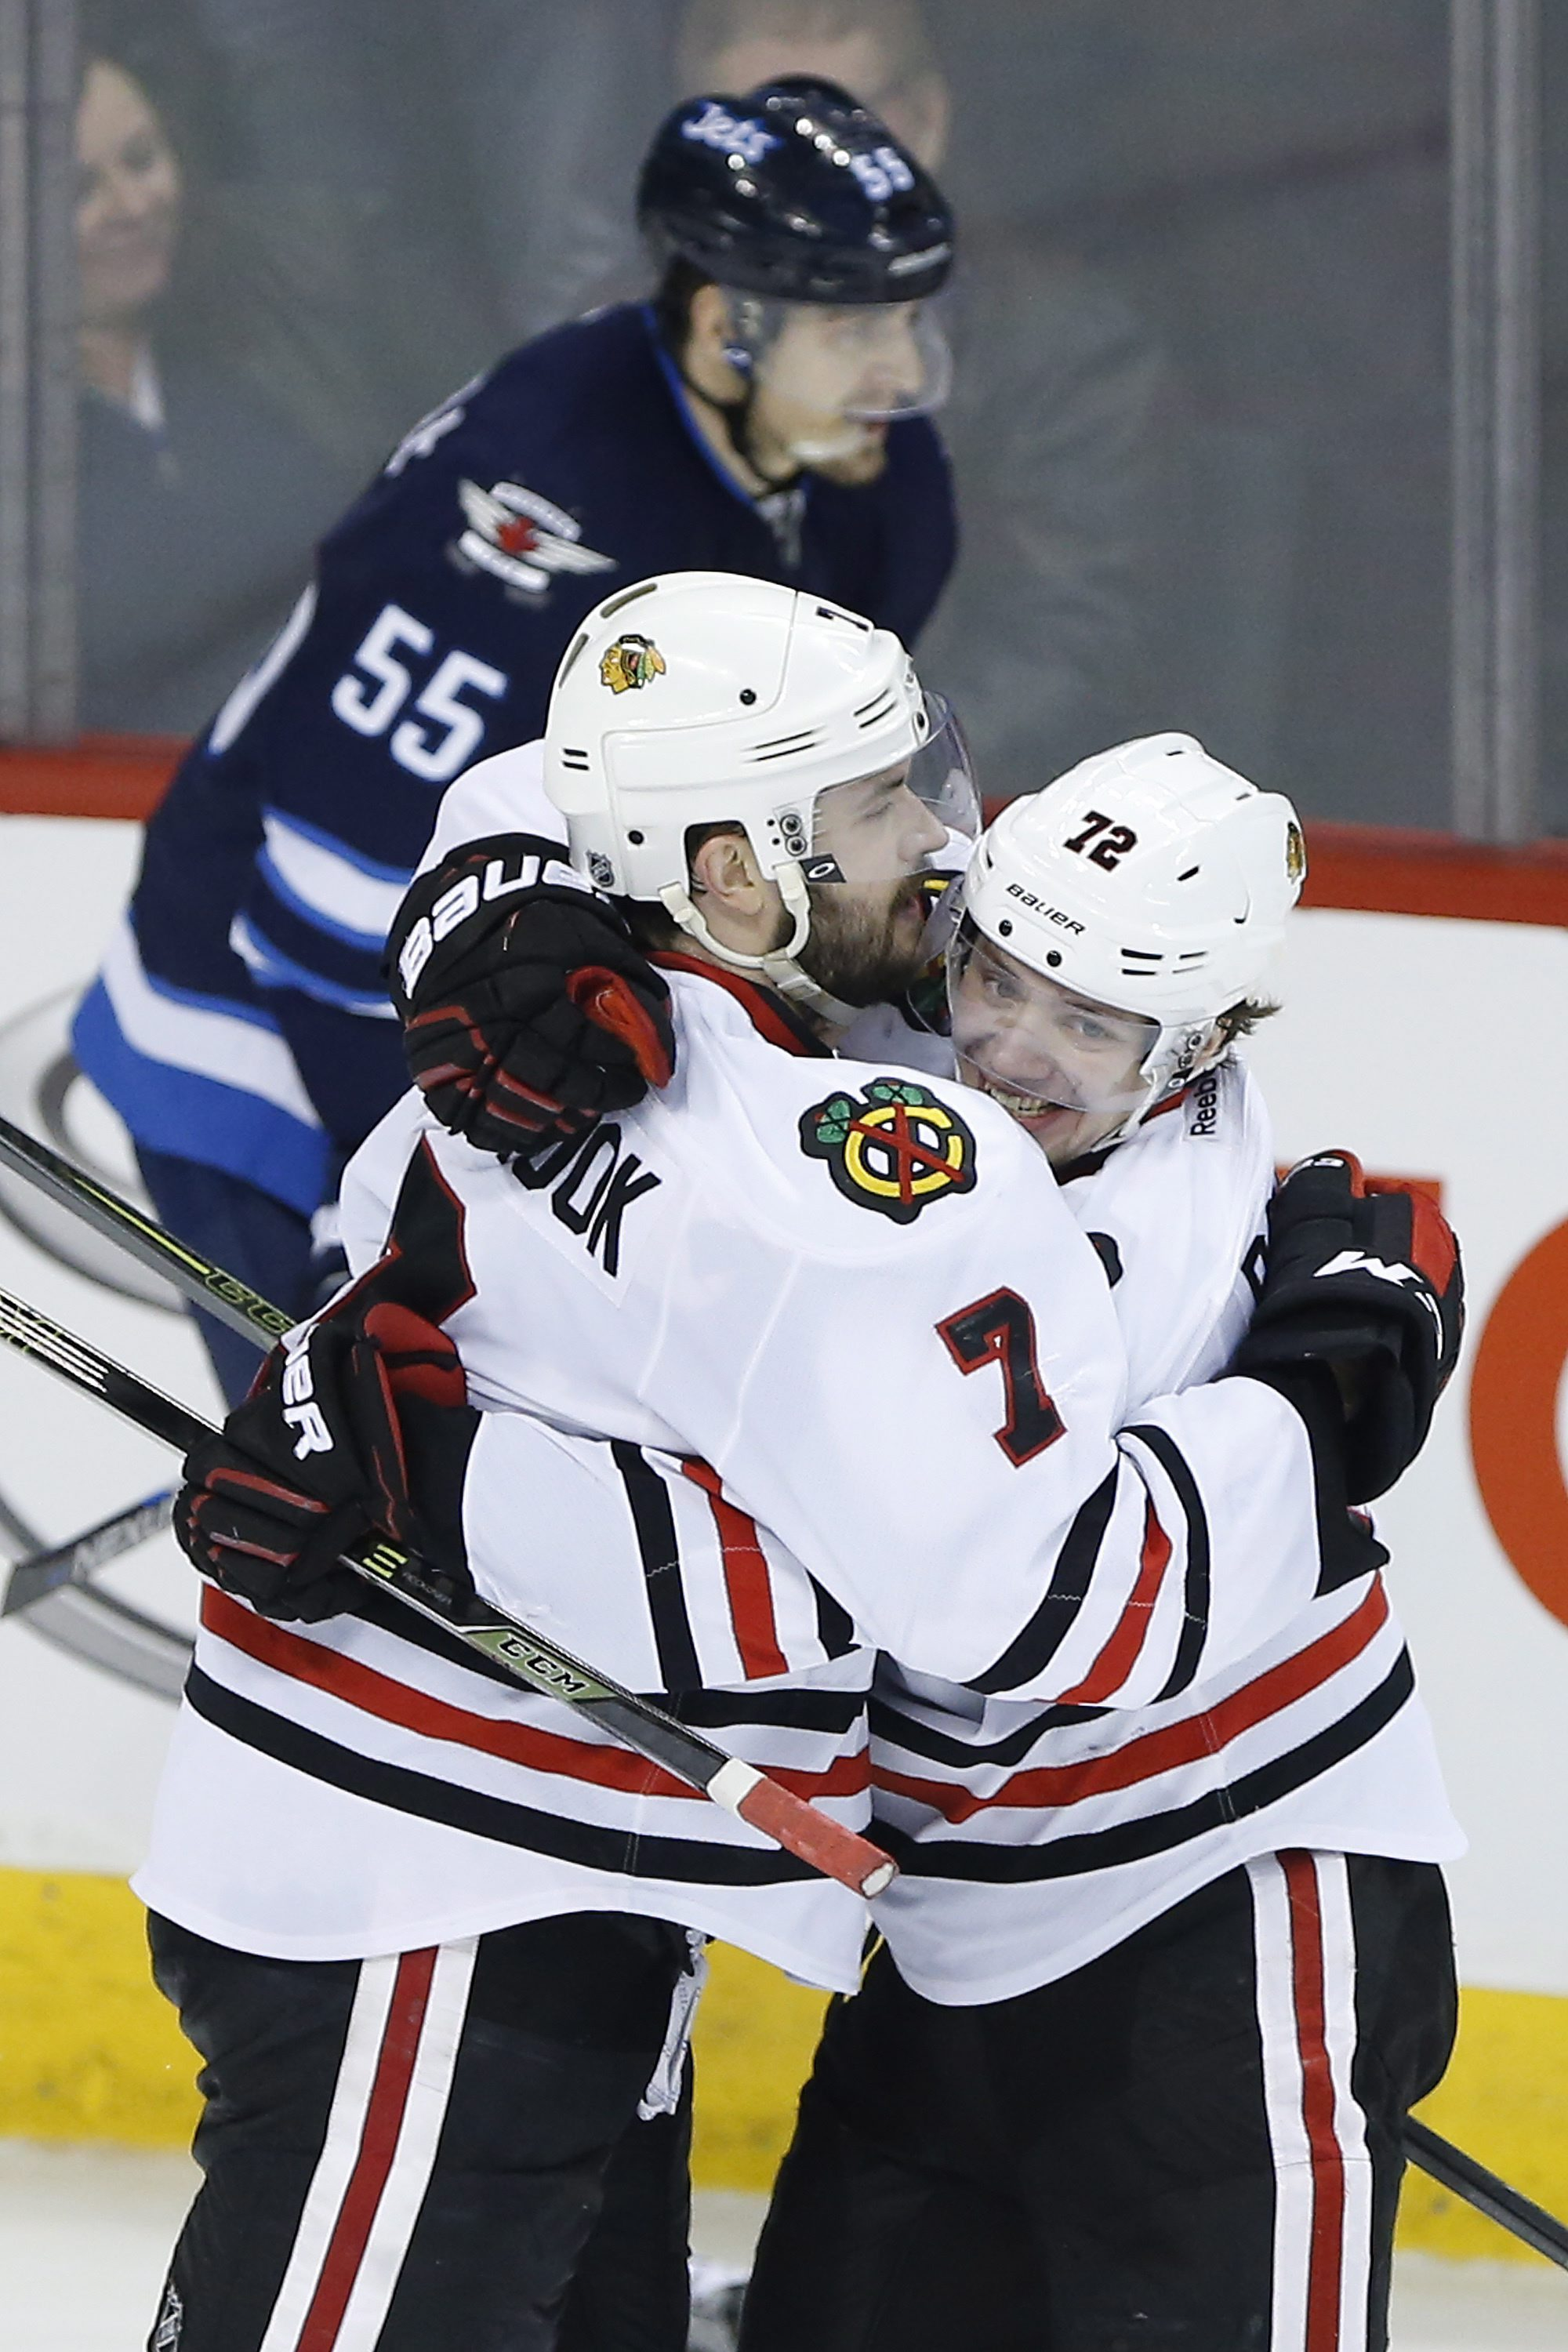 Chicago Blackhawks' Artemi Panarin (72) and Brent Seabrook (7) celebrate Seabrook's game-winning goal against the Winnipeg Jets during overtime in an NHL hockey game Friday, April 1, 2016, in Winnipeg, Manitoba. (John Woods/The Canadian Press via AP)